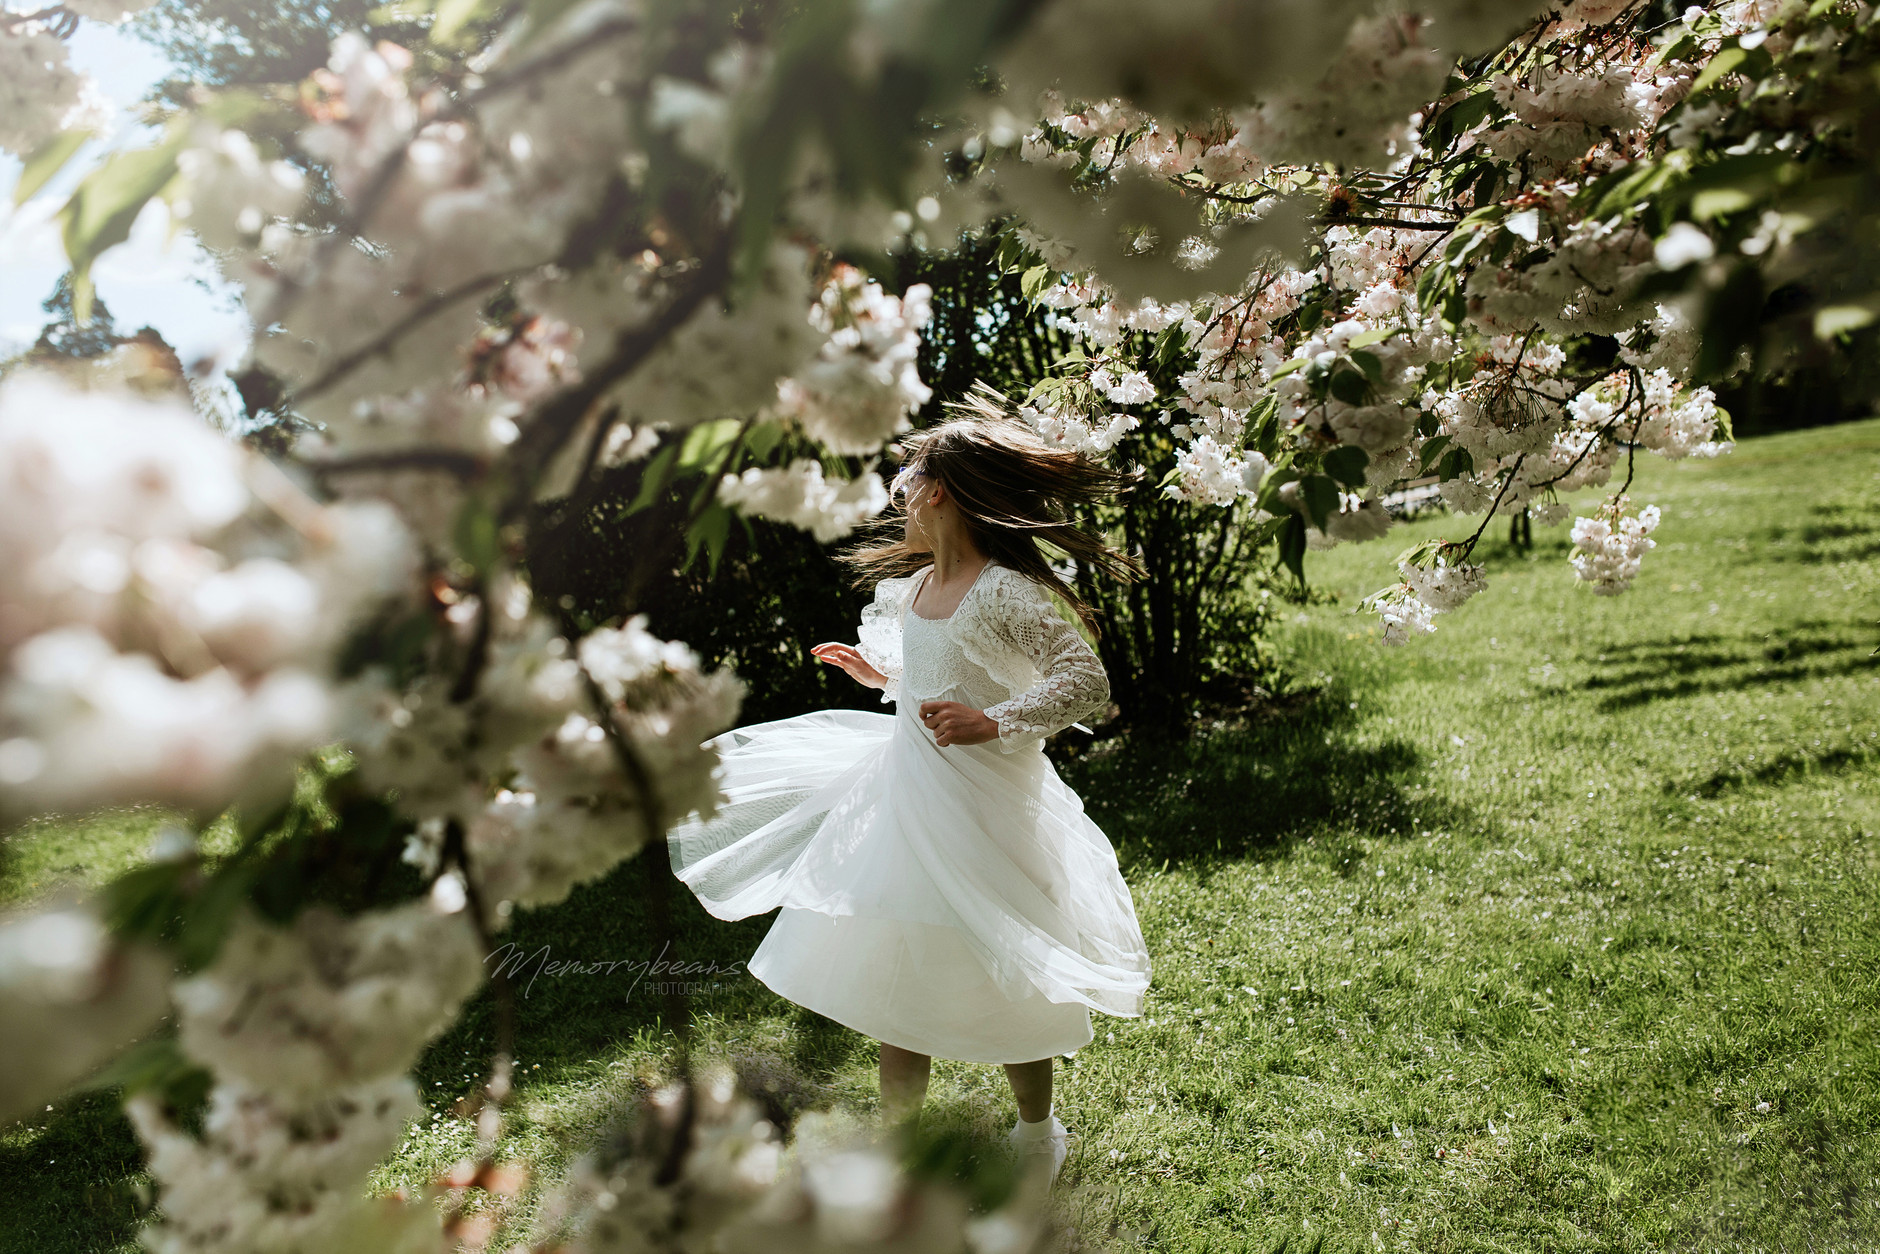 First holy communion daughter twirling her dress in Dublin Botanical Gardens